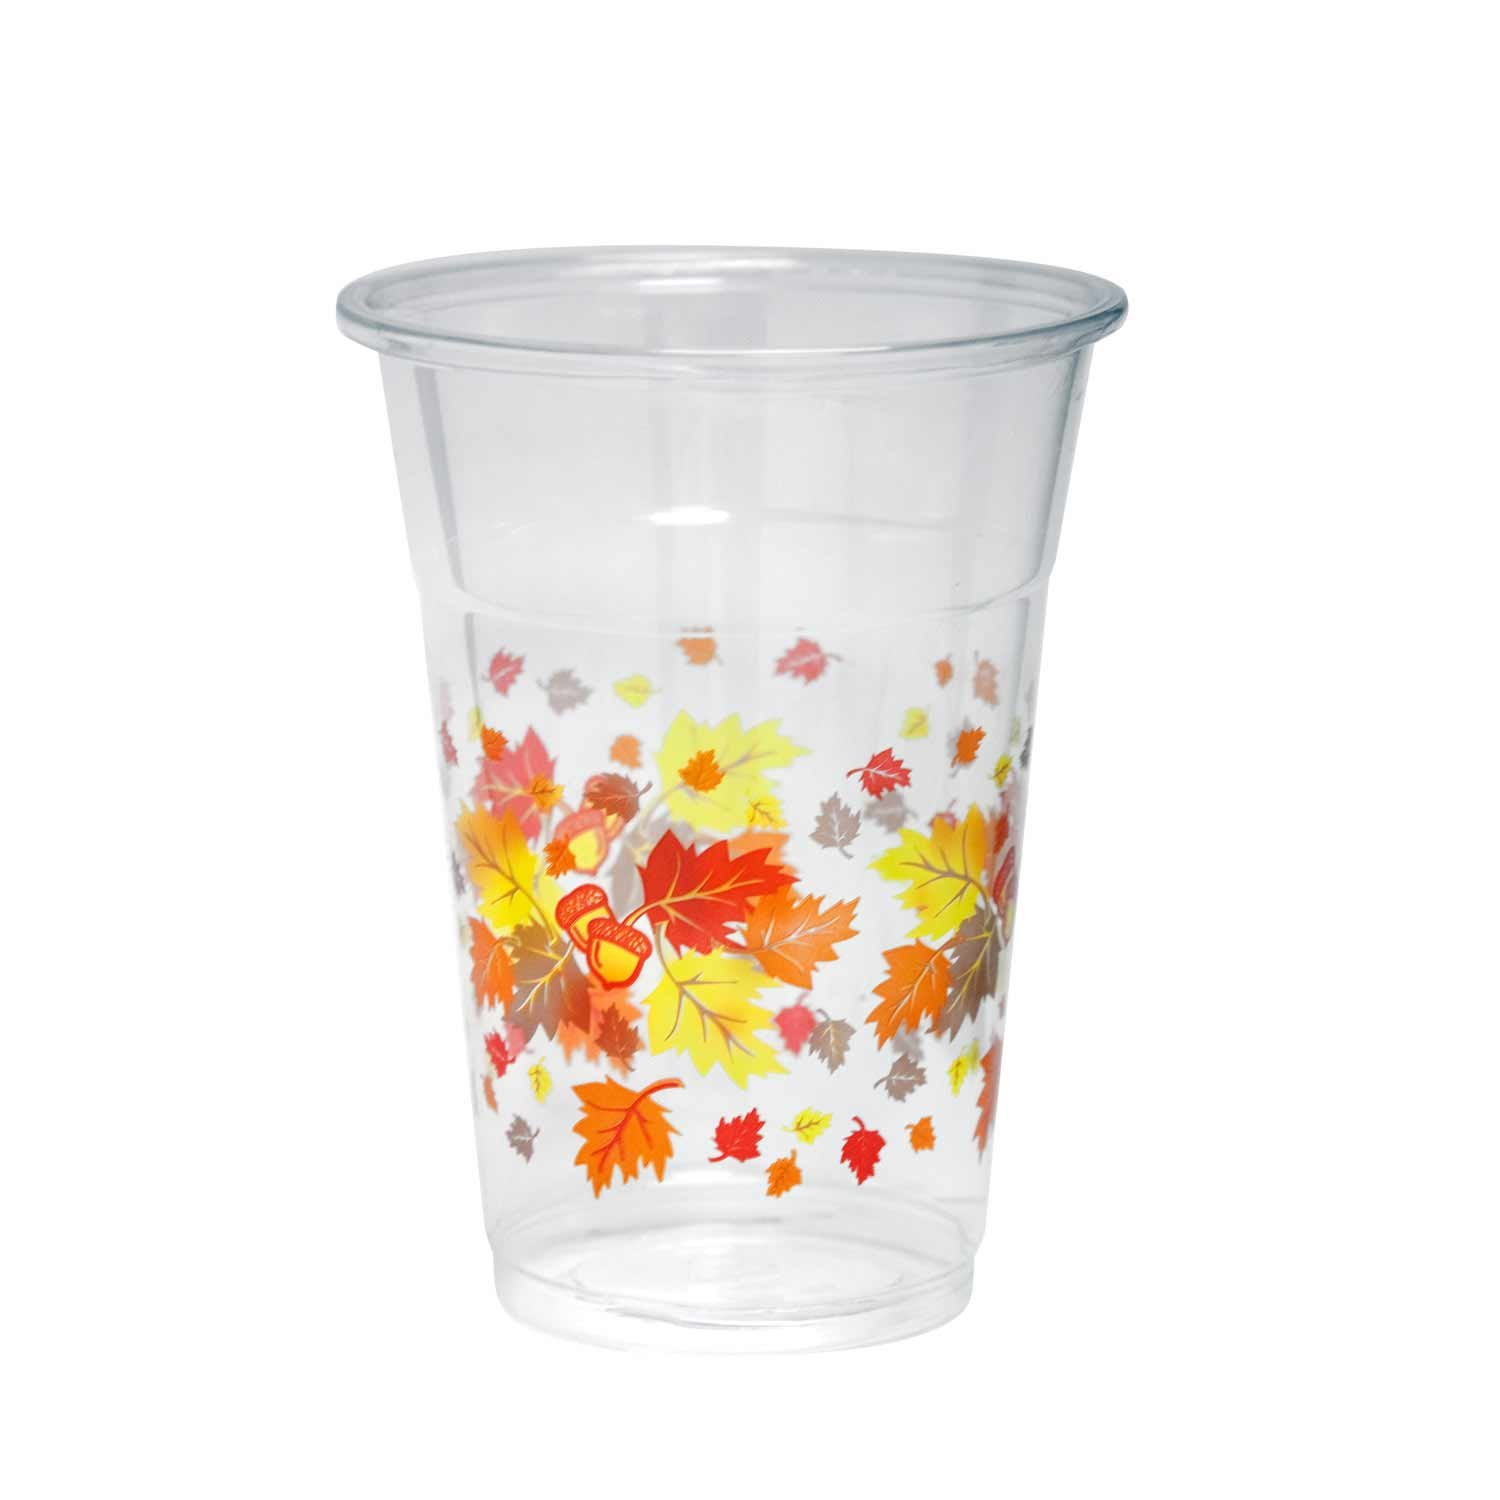 Party Essentials 20 Count Soft Plastic Printed Party Cups, 16-Ounce, Autumn Leaves